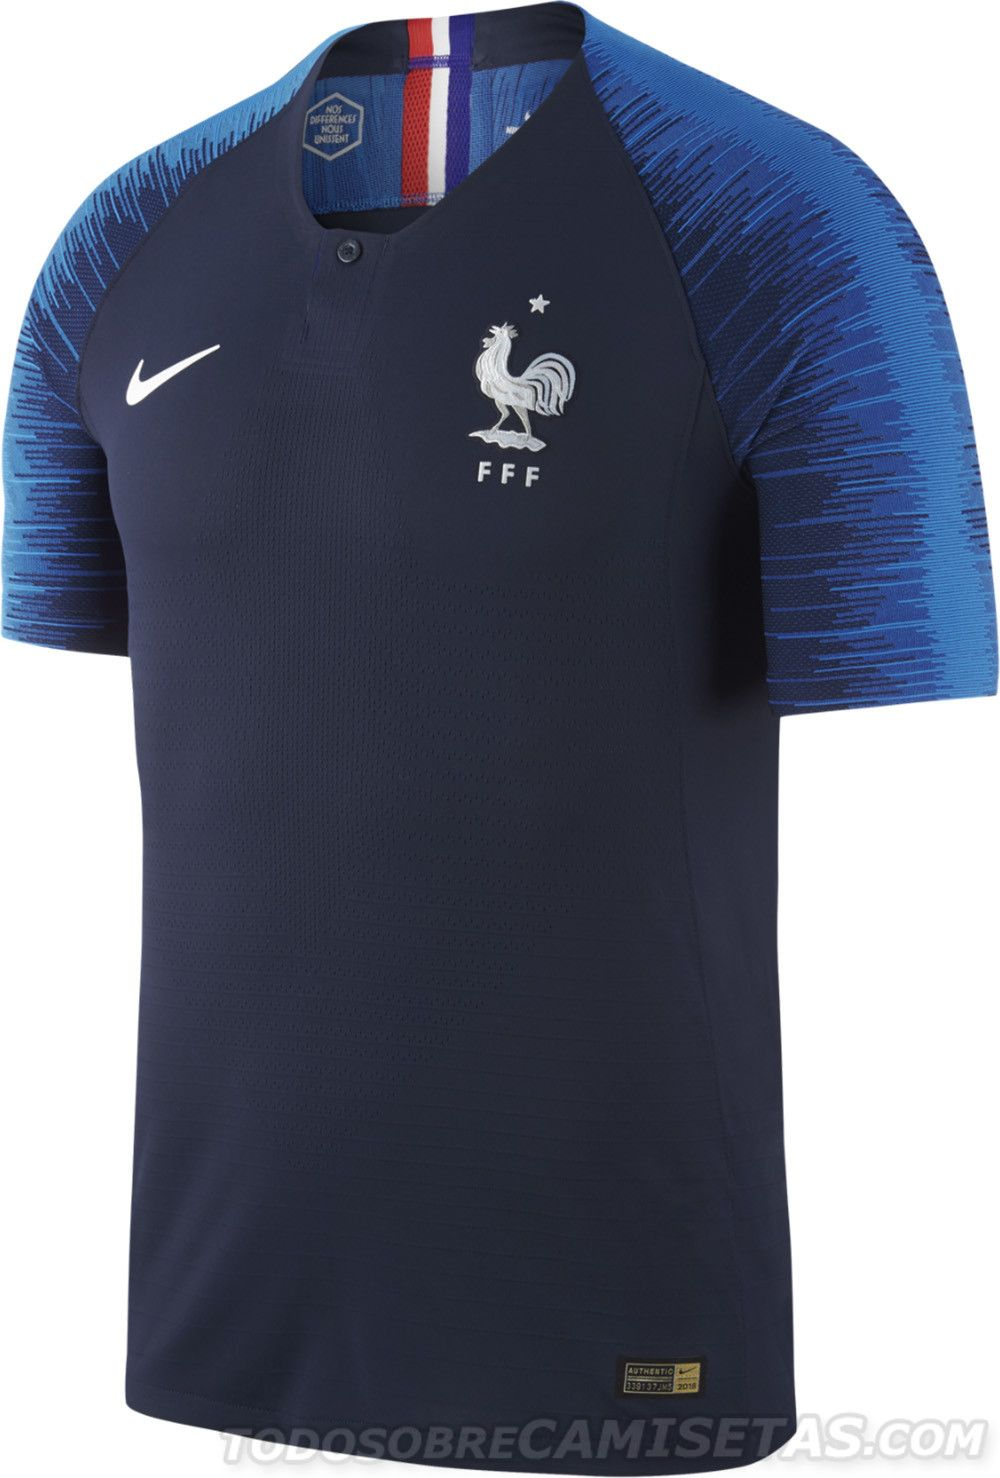 09d94374a9 France 2018 World Cup Nike Kits